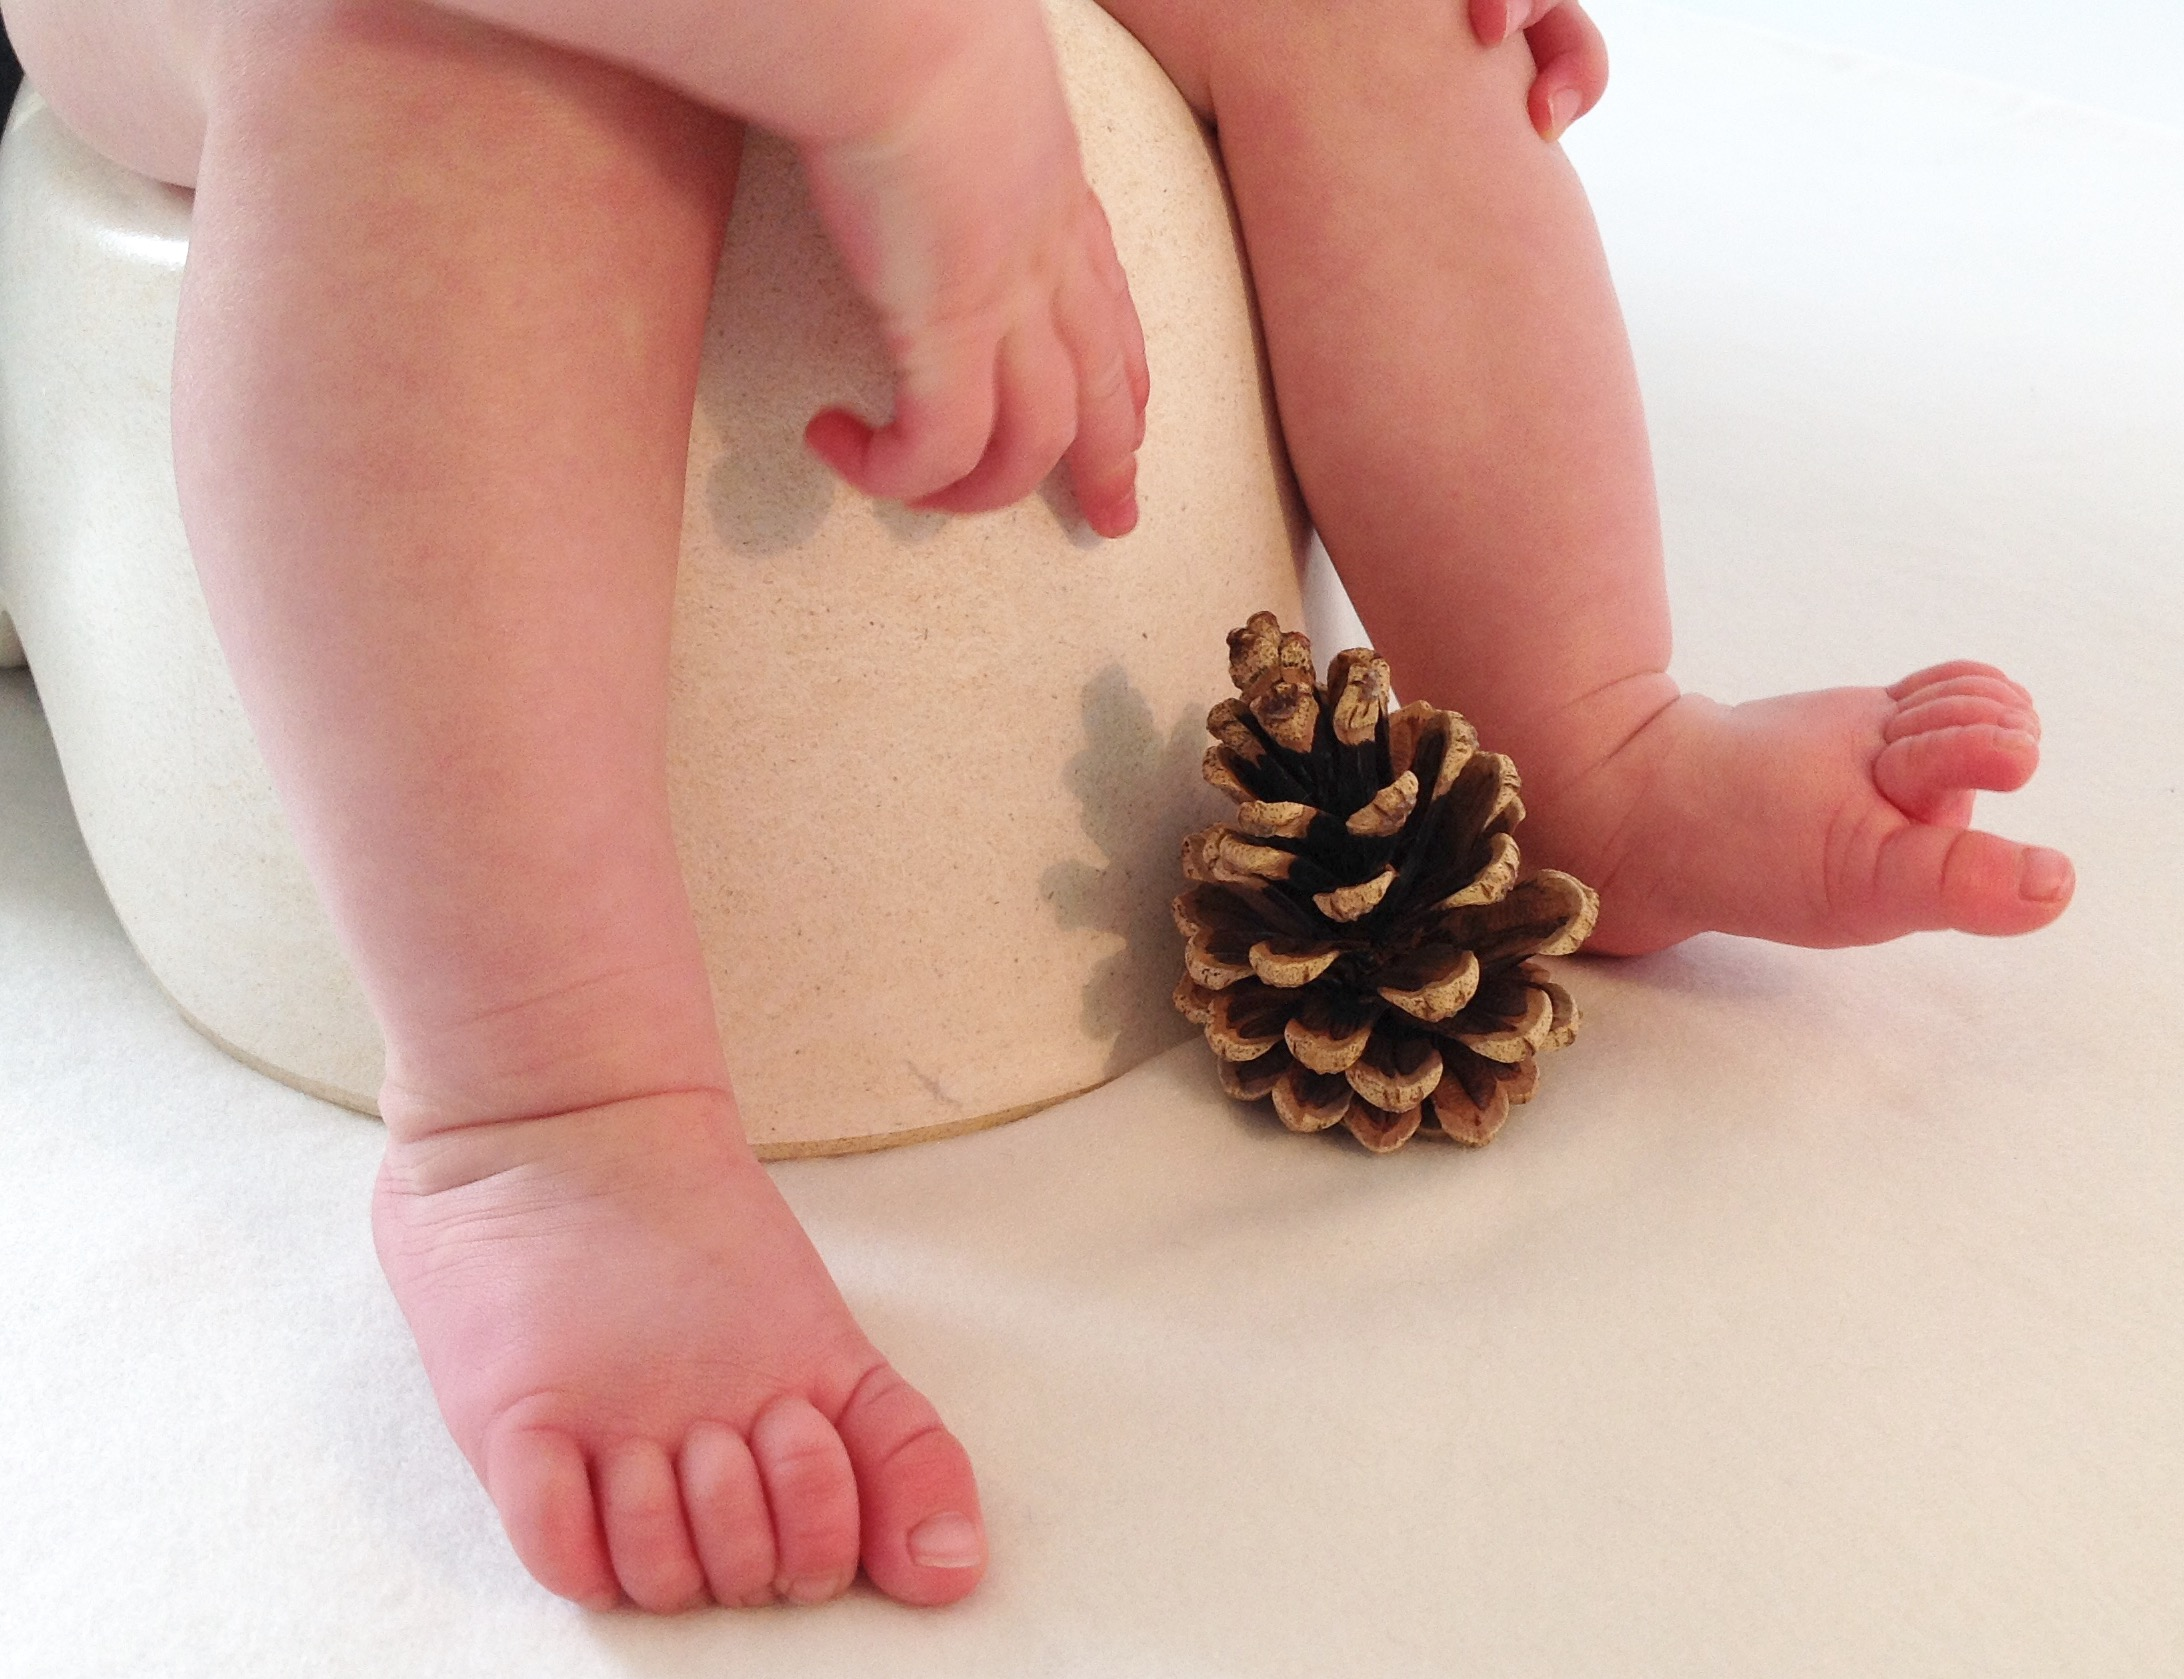 The dangers of early potty training: do they really exist? |